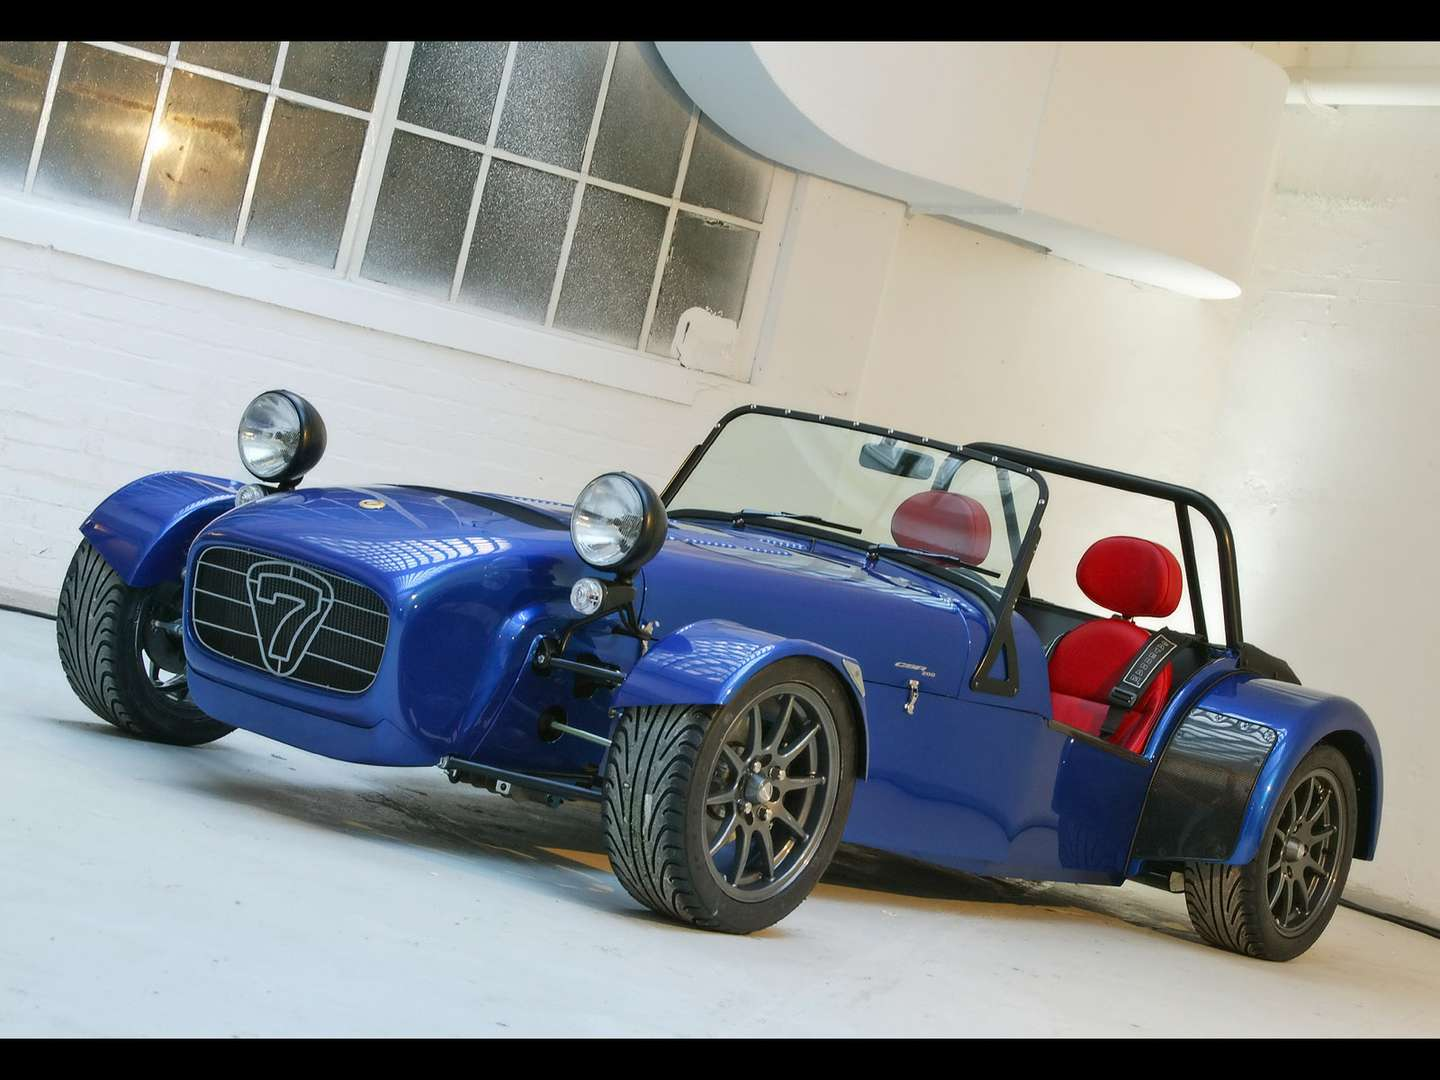 Caterham Super 7 #7306983